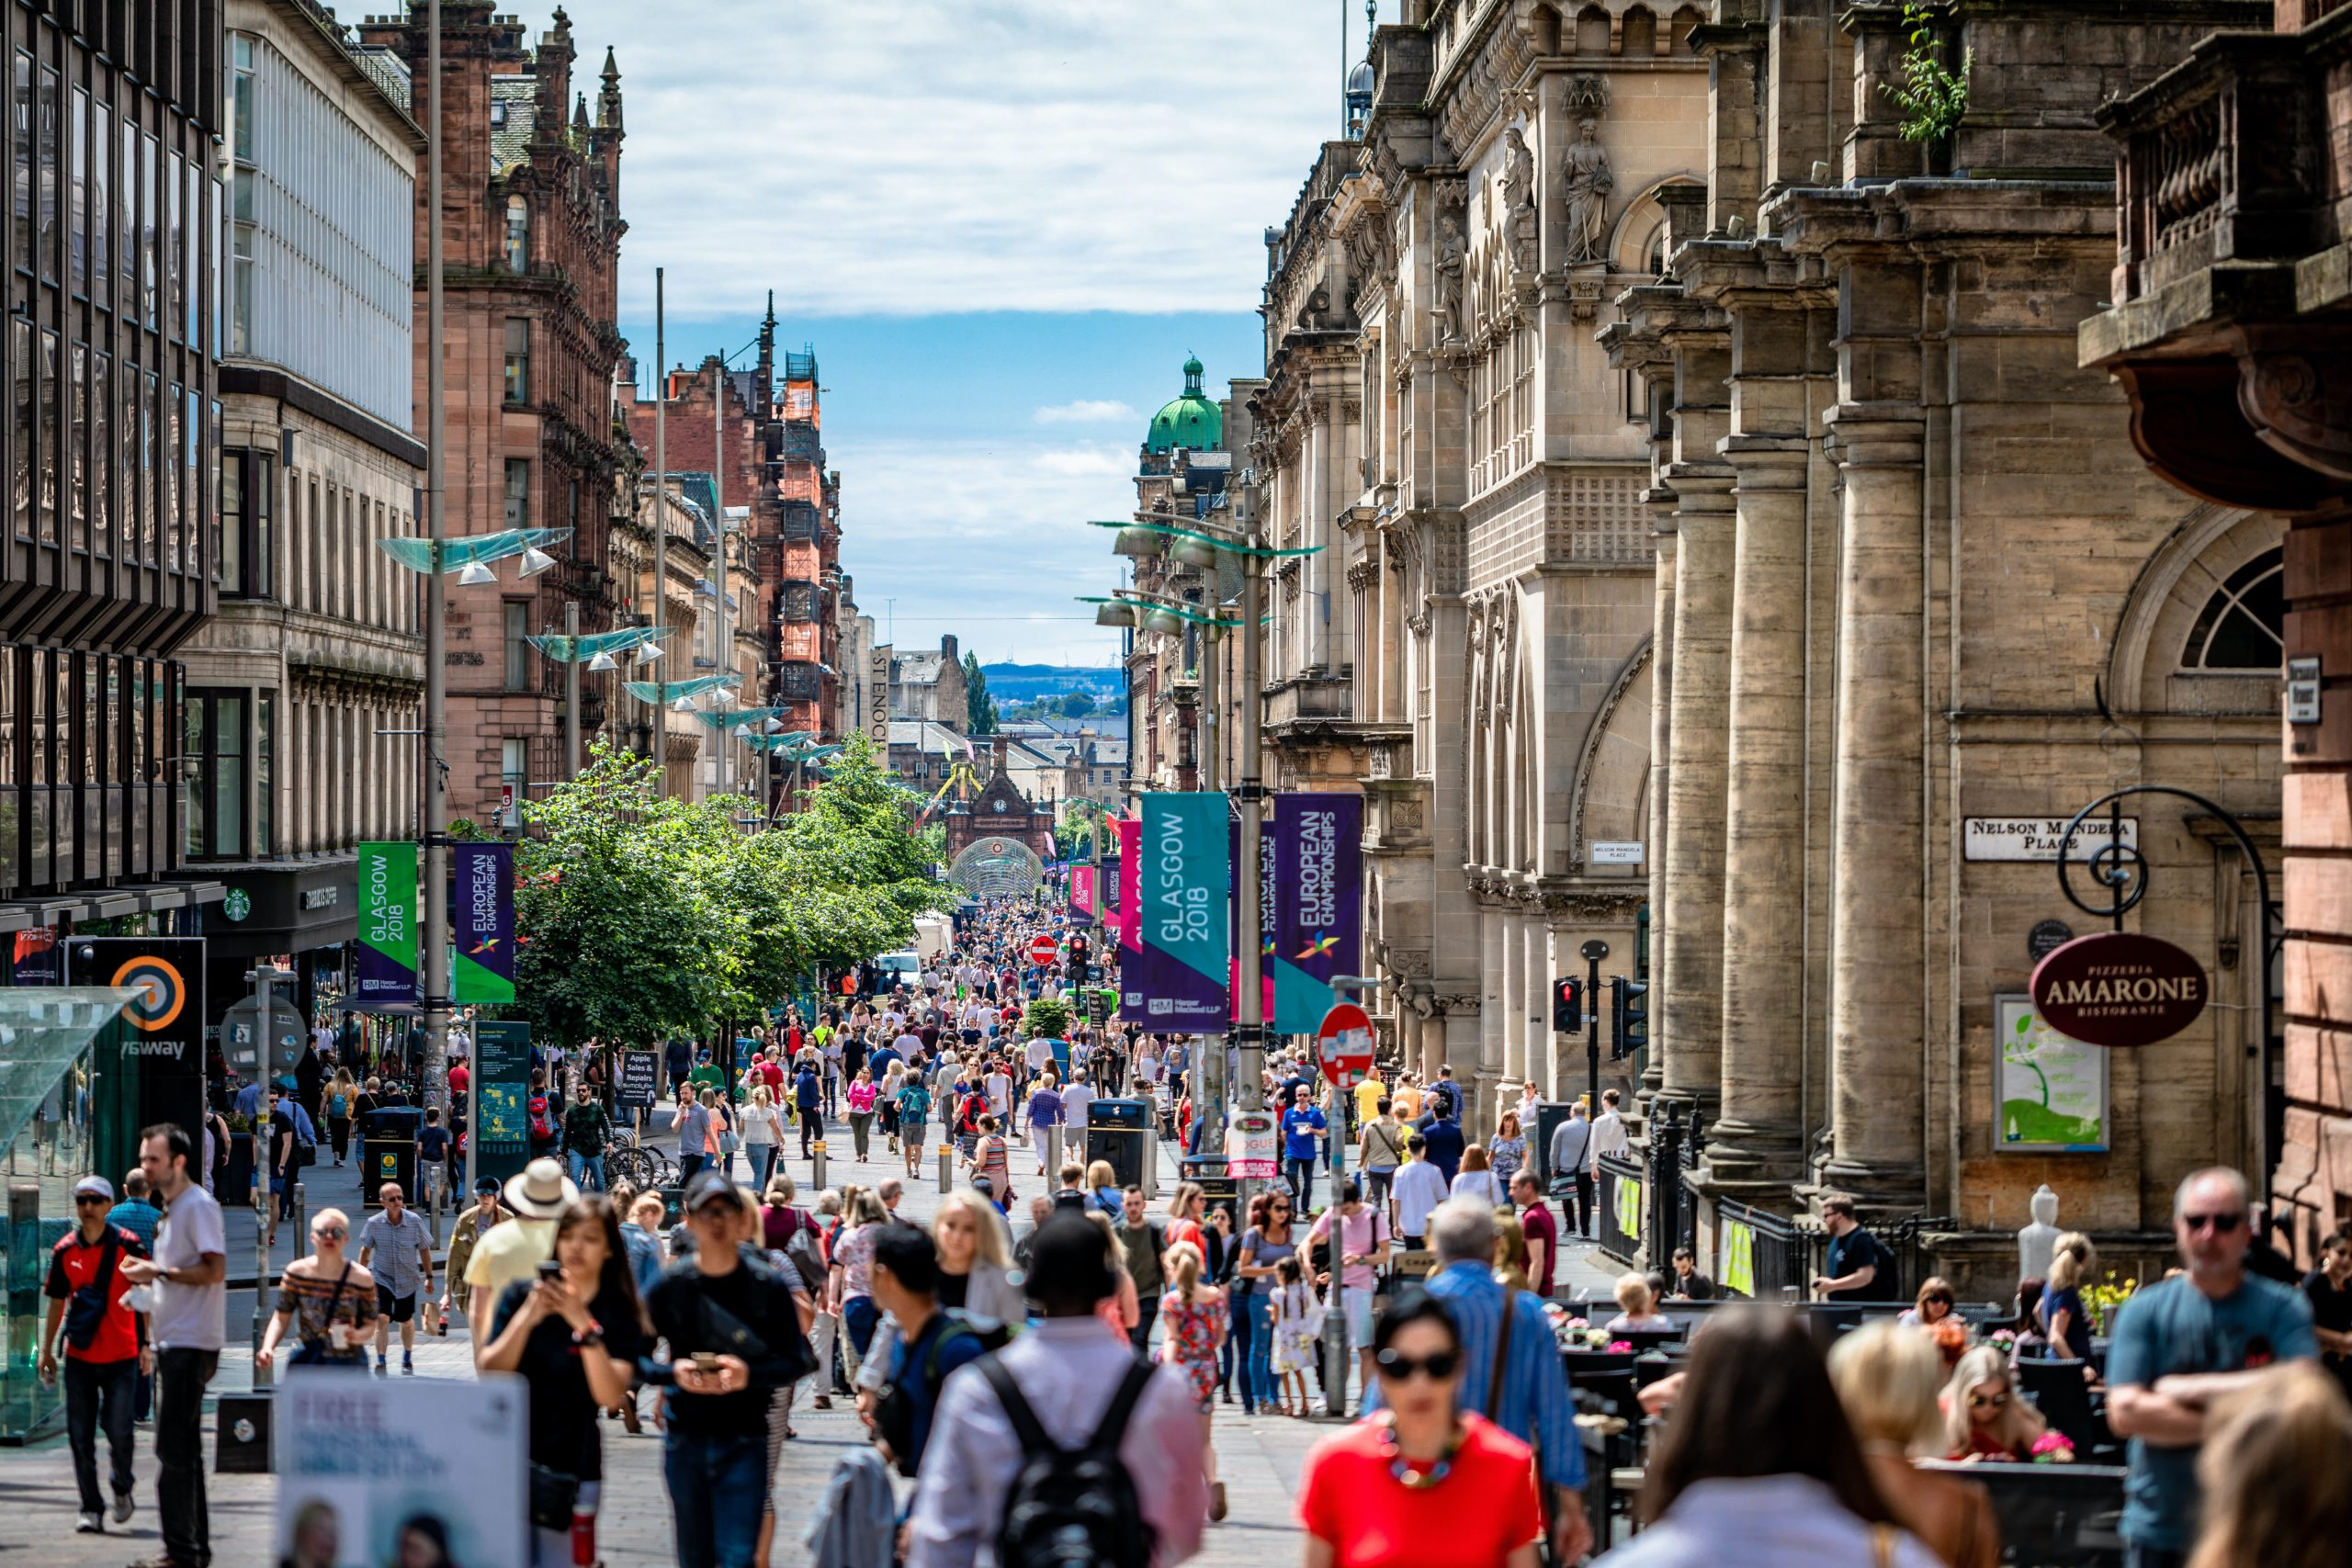 gp appointment cost in glasgow